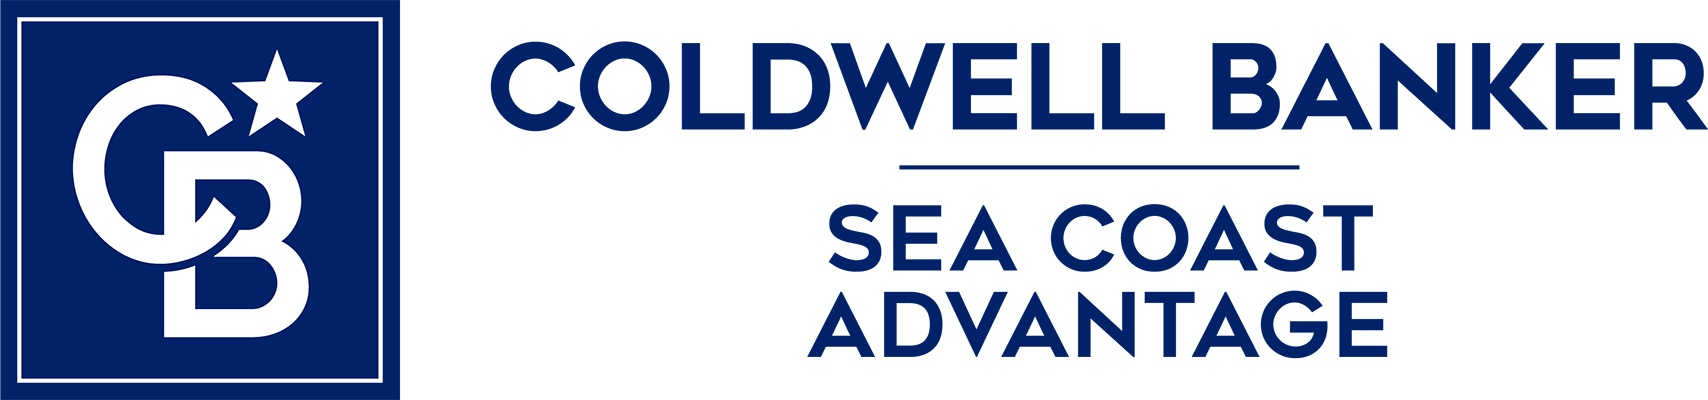 Cassie Williamson - Coldwell Banker Sea Coast Advantage Realty